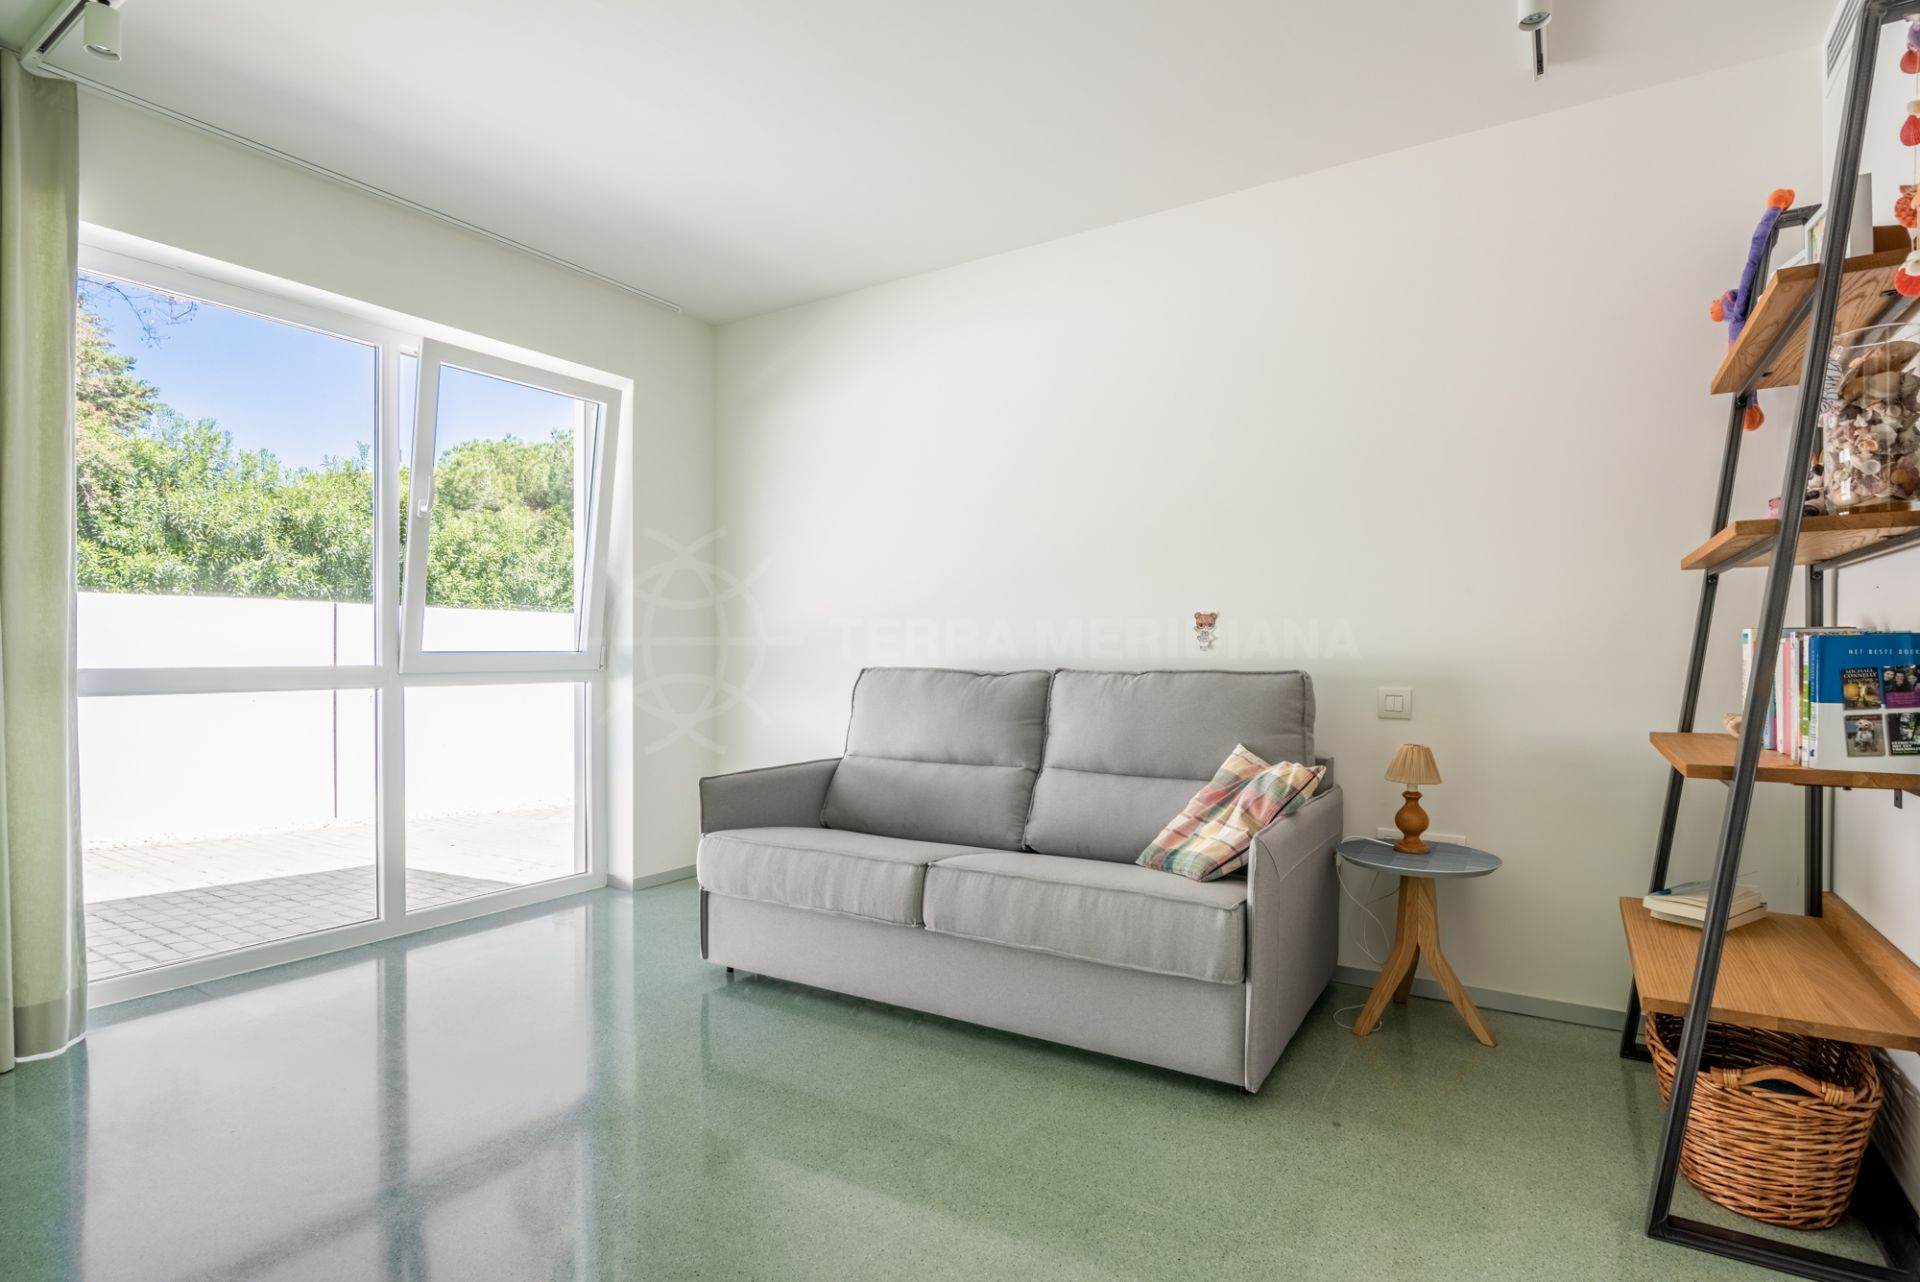 Gmk Home & Living Sofa Elegant And Iconic Single Storey Contemporary Villa For Sale